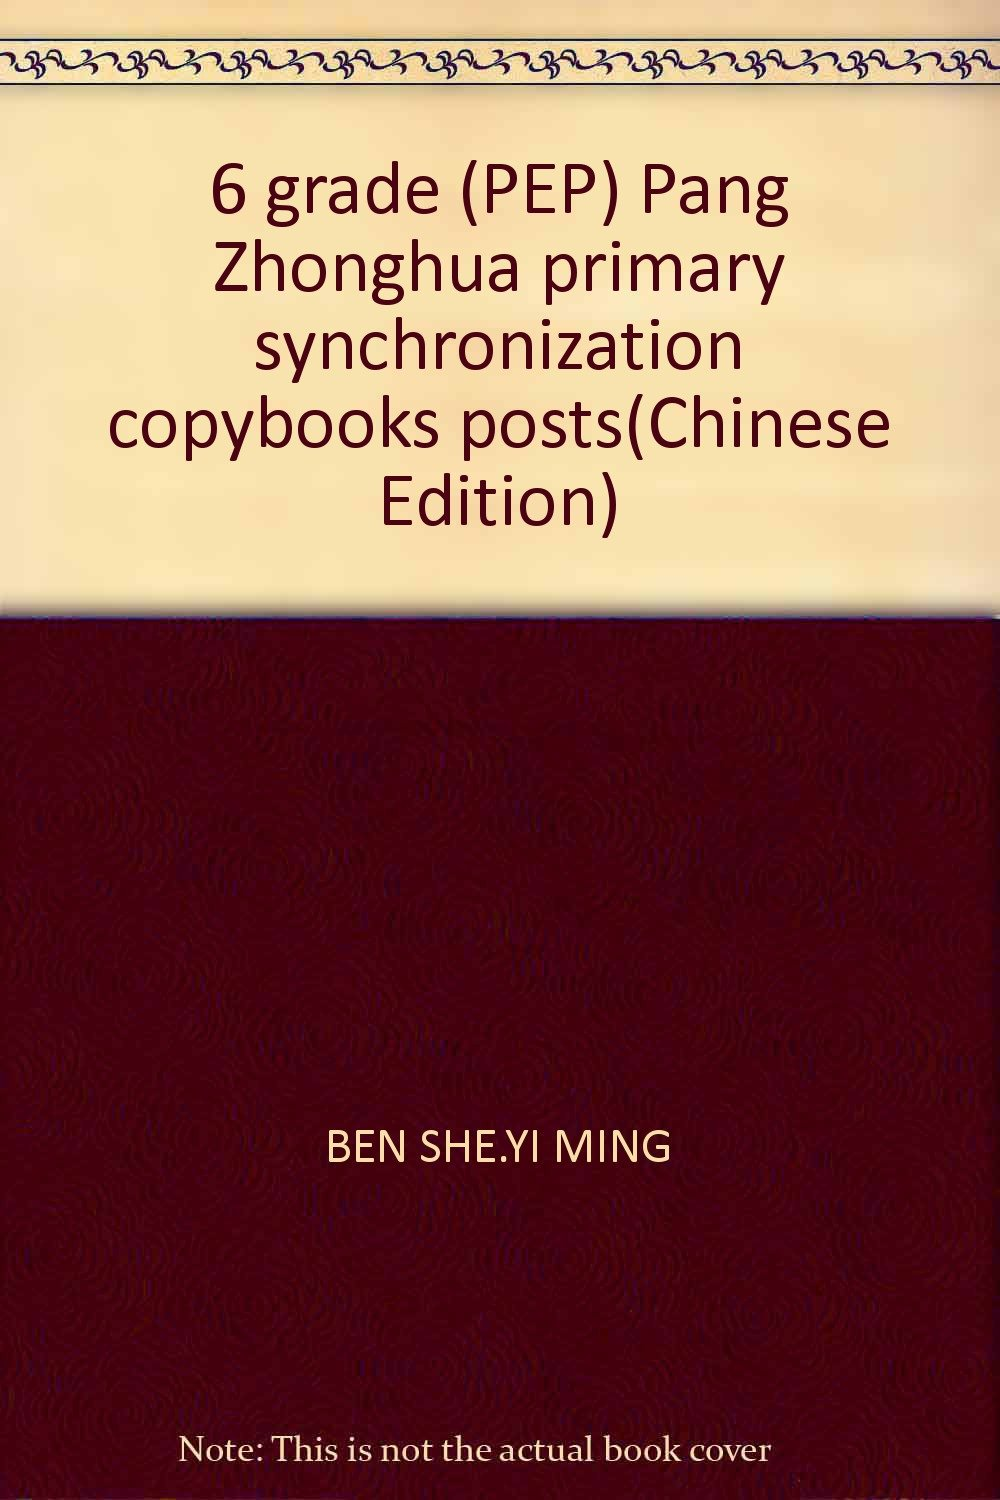 Download 6 grade (PEP) Pang Zhonghua primary synchronization copybooks posts(Chinese Edition) pdf